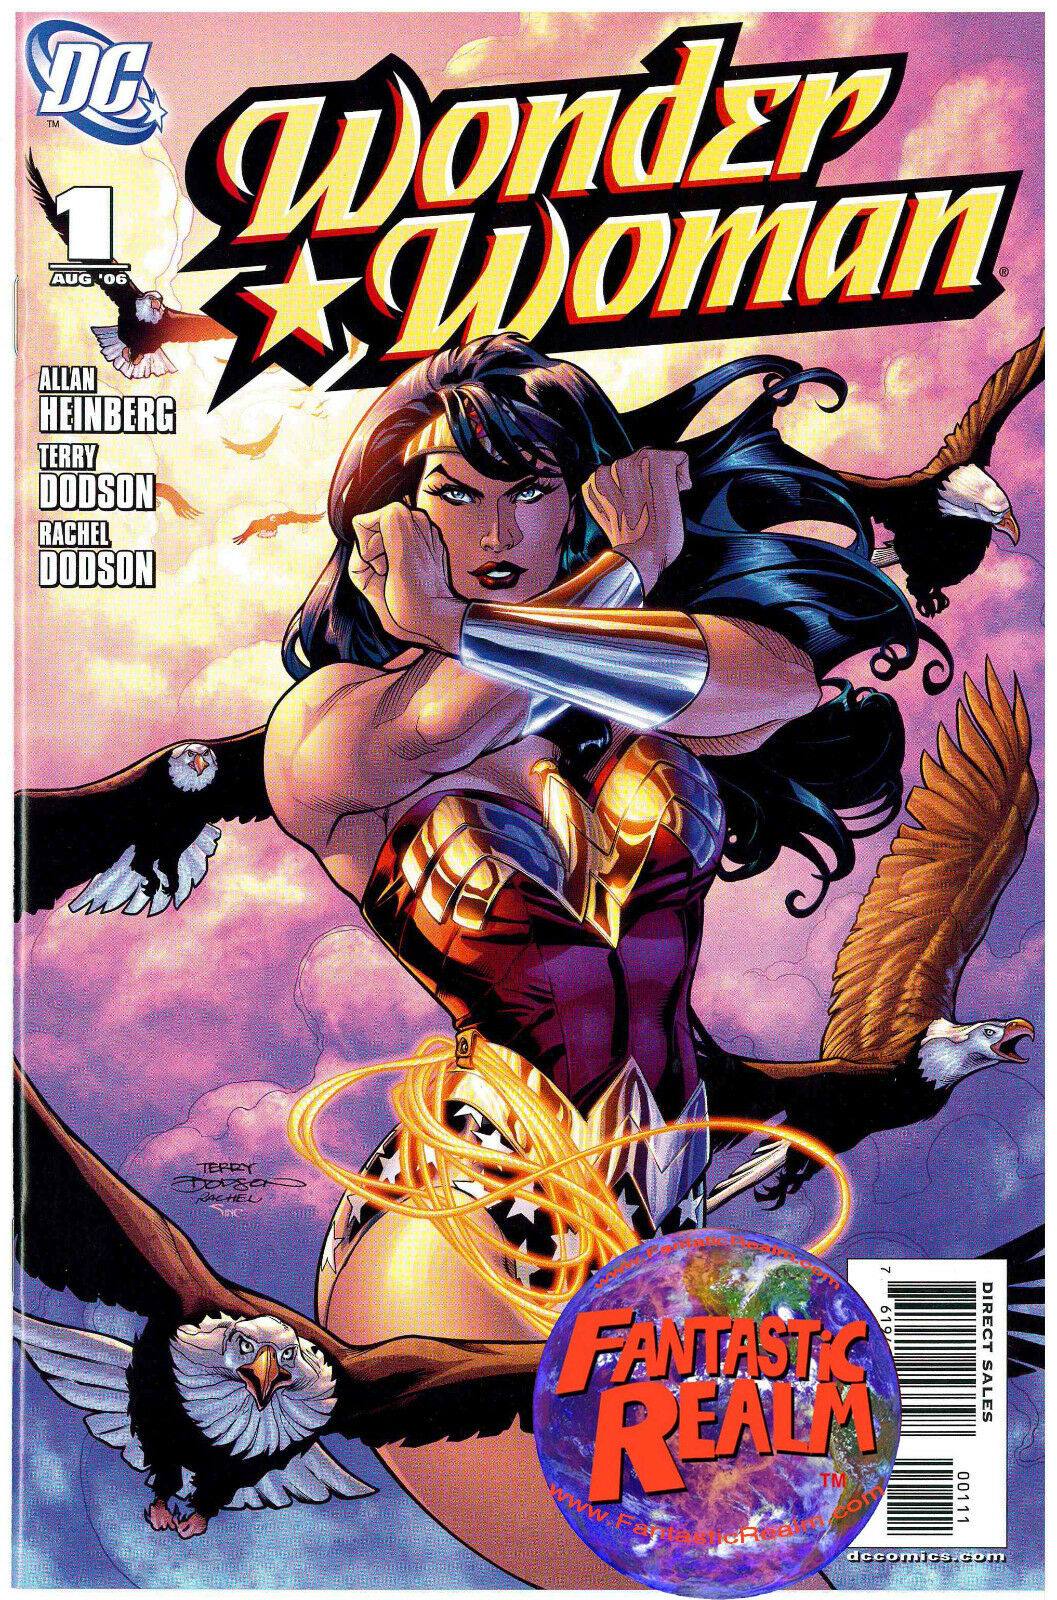 WONDER WOMAN #1, 2, 3, 4 & 5 DODSON COVERS DC COMICS